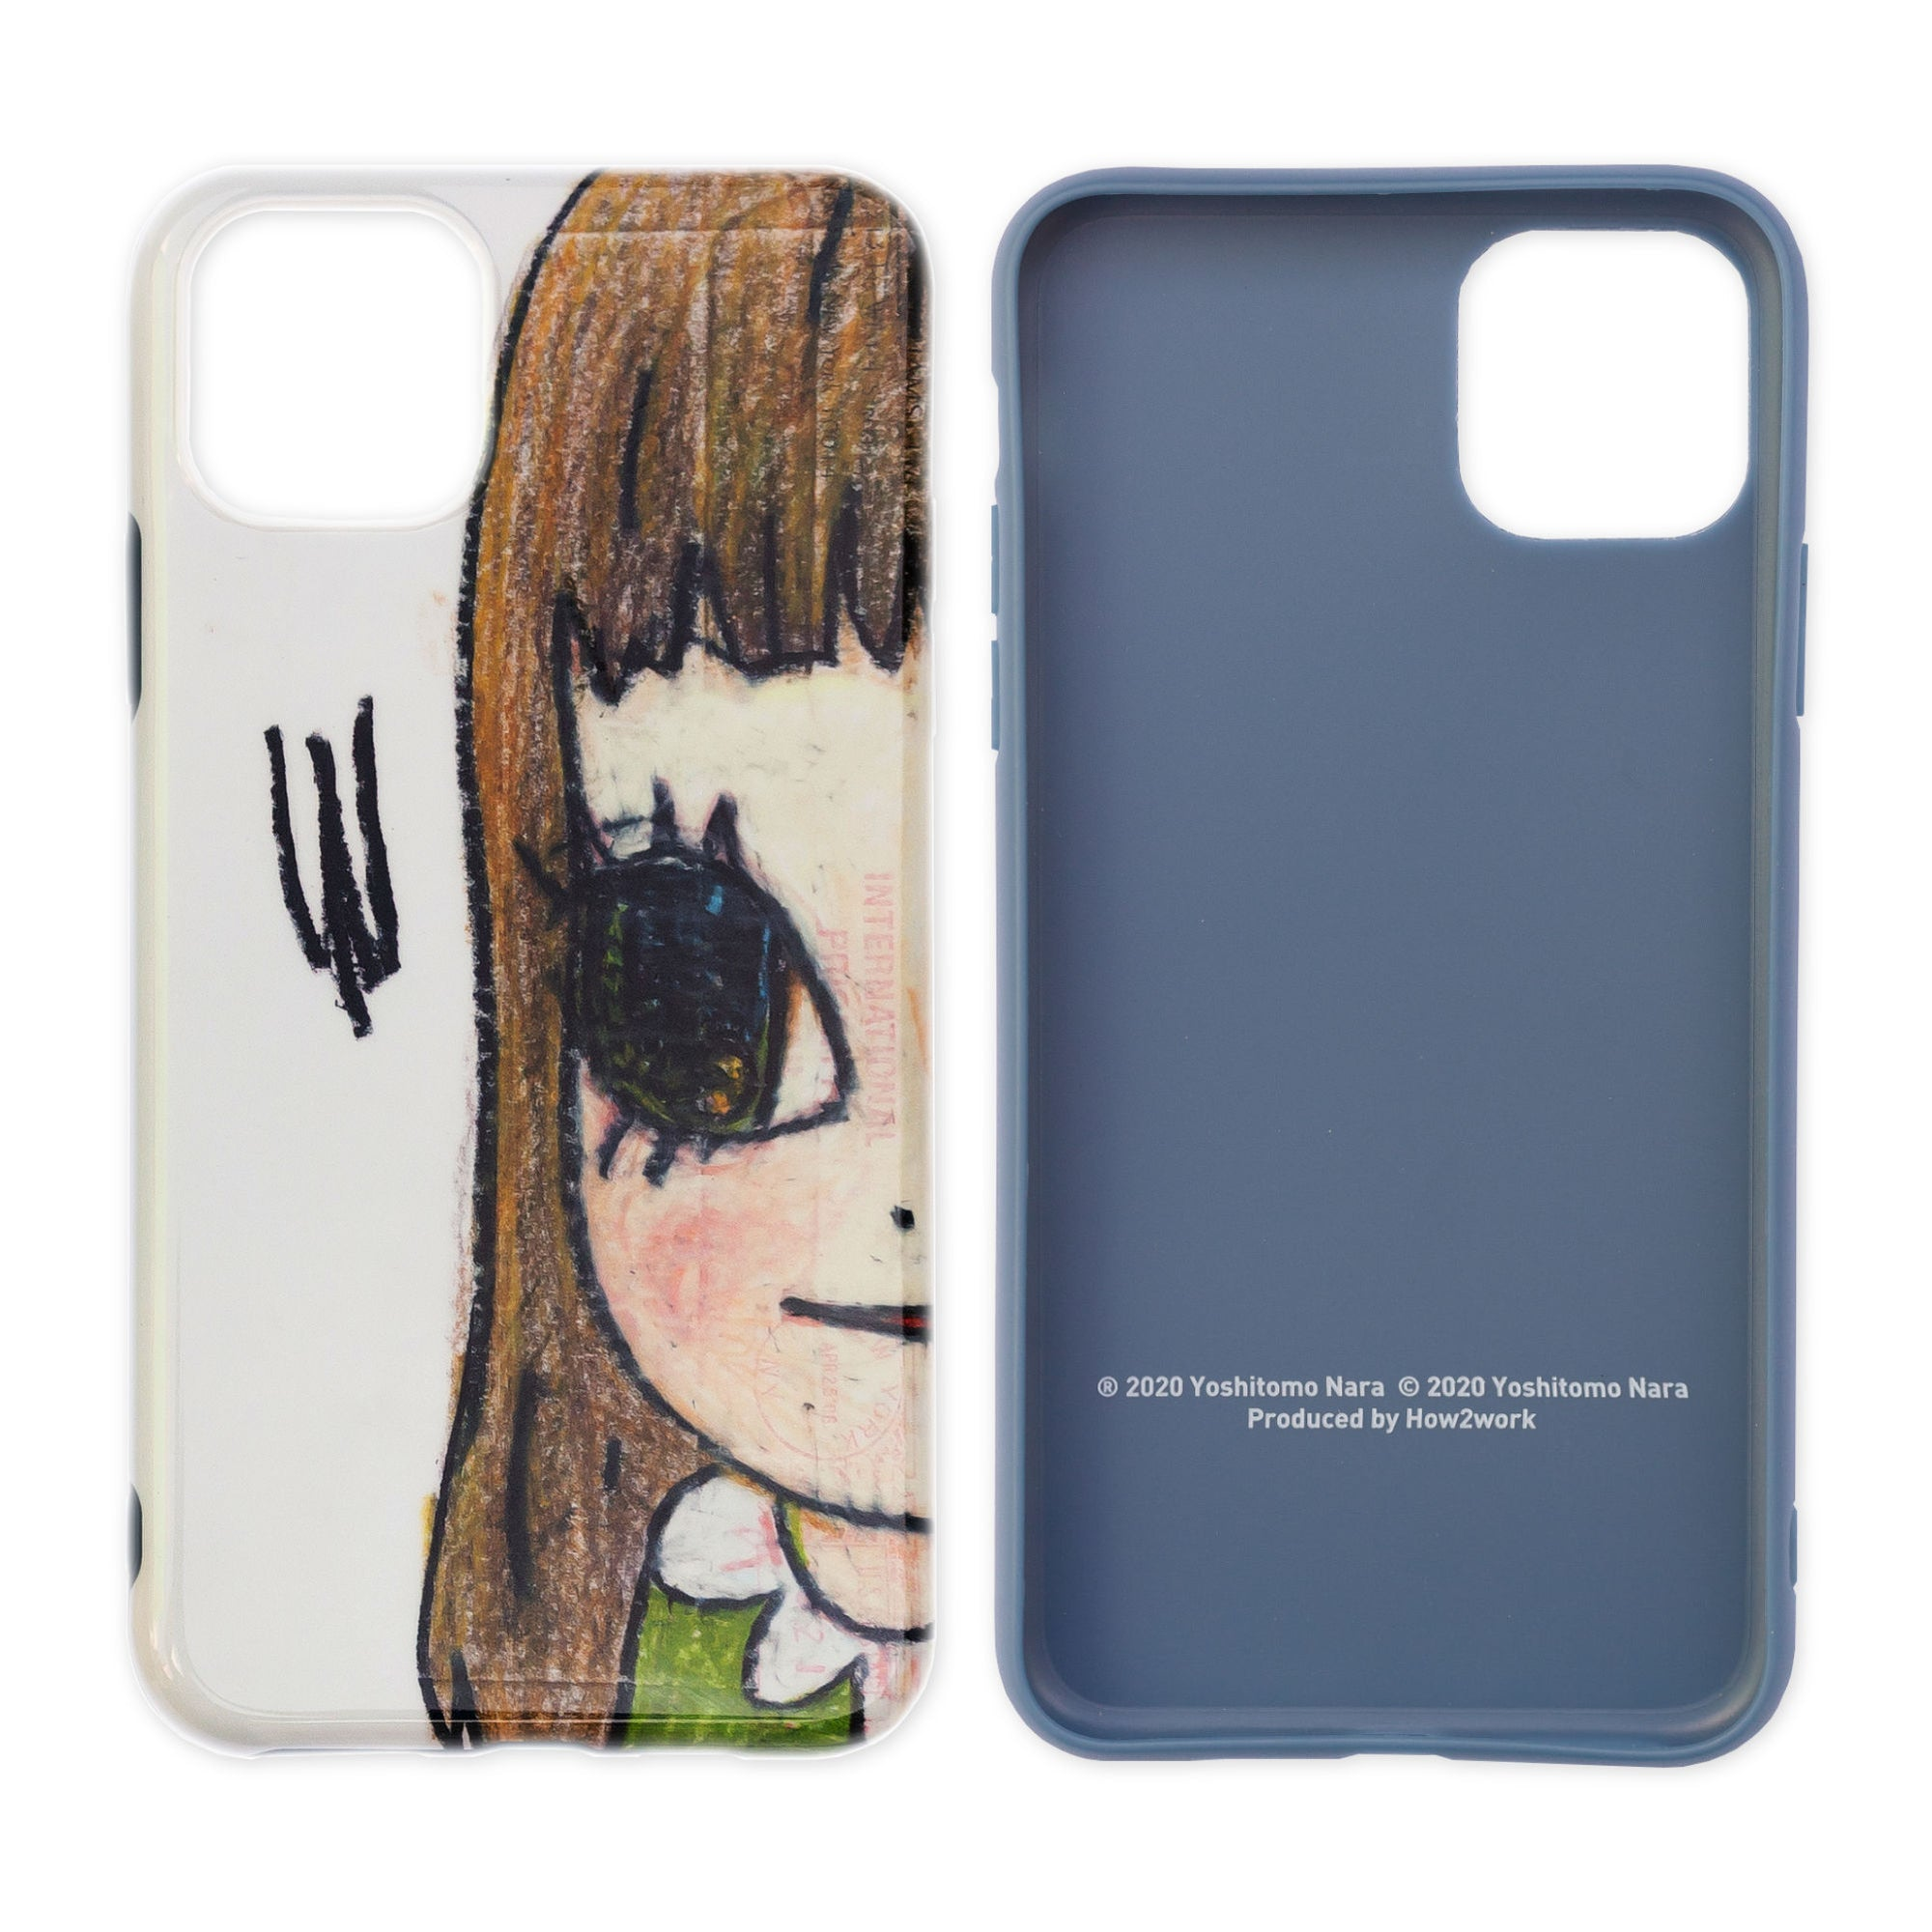 Yoshitomo Nara 2020 mobile case for iPhone 11 Pro Max, Untitled 2007